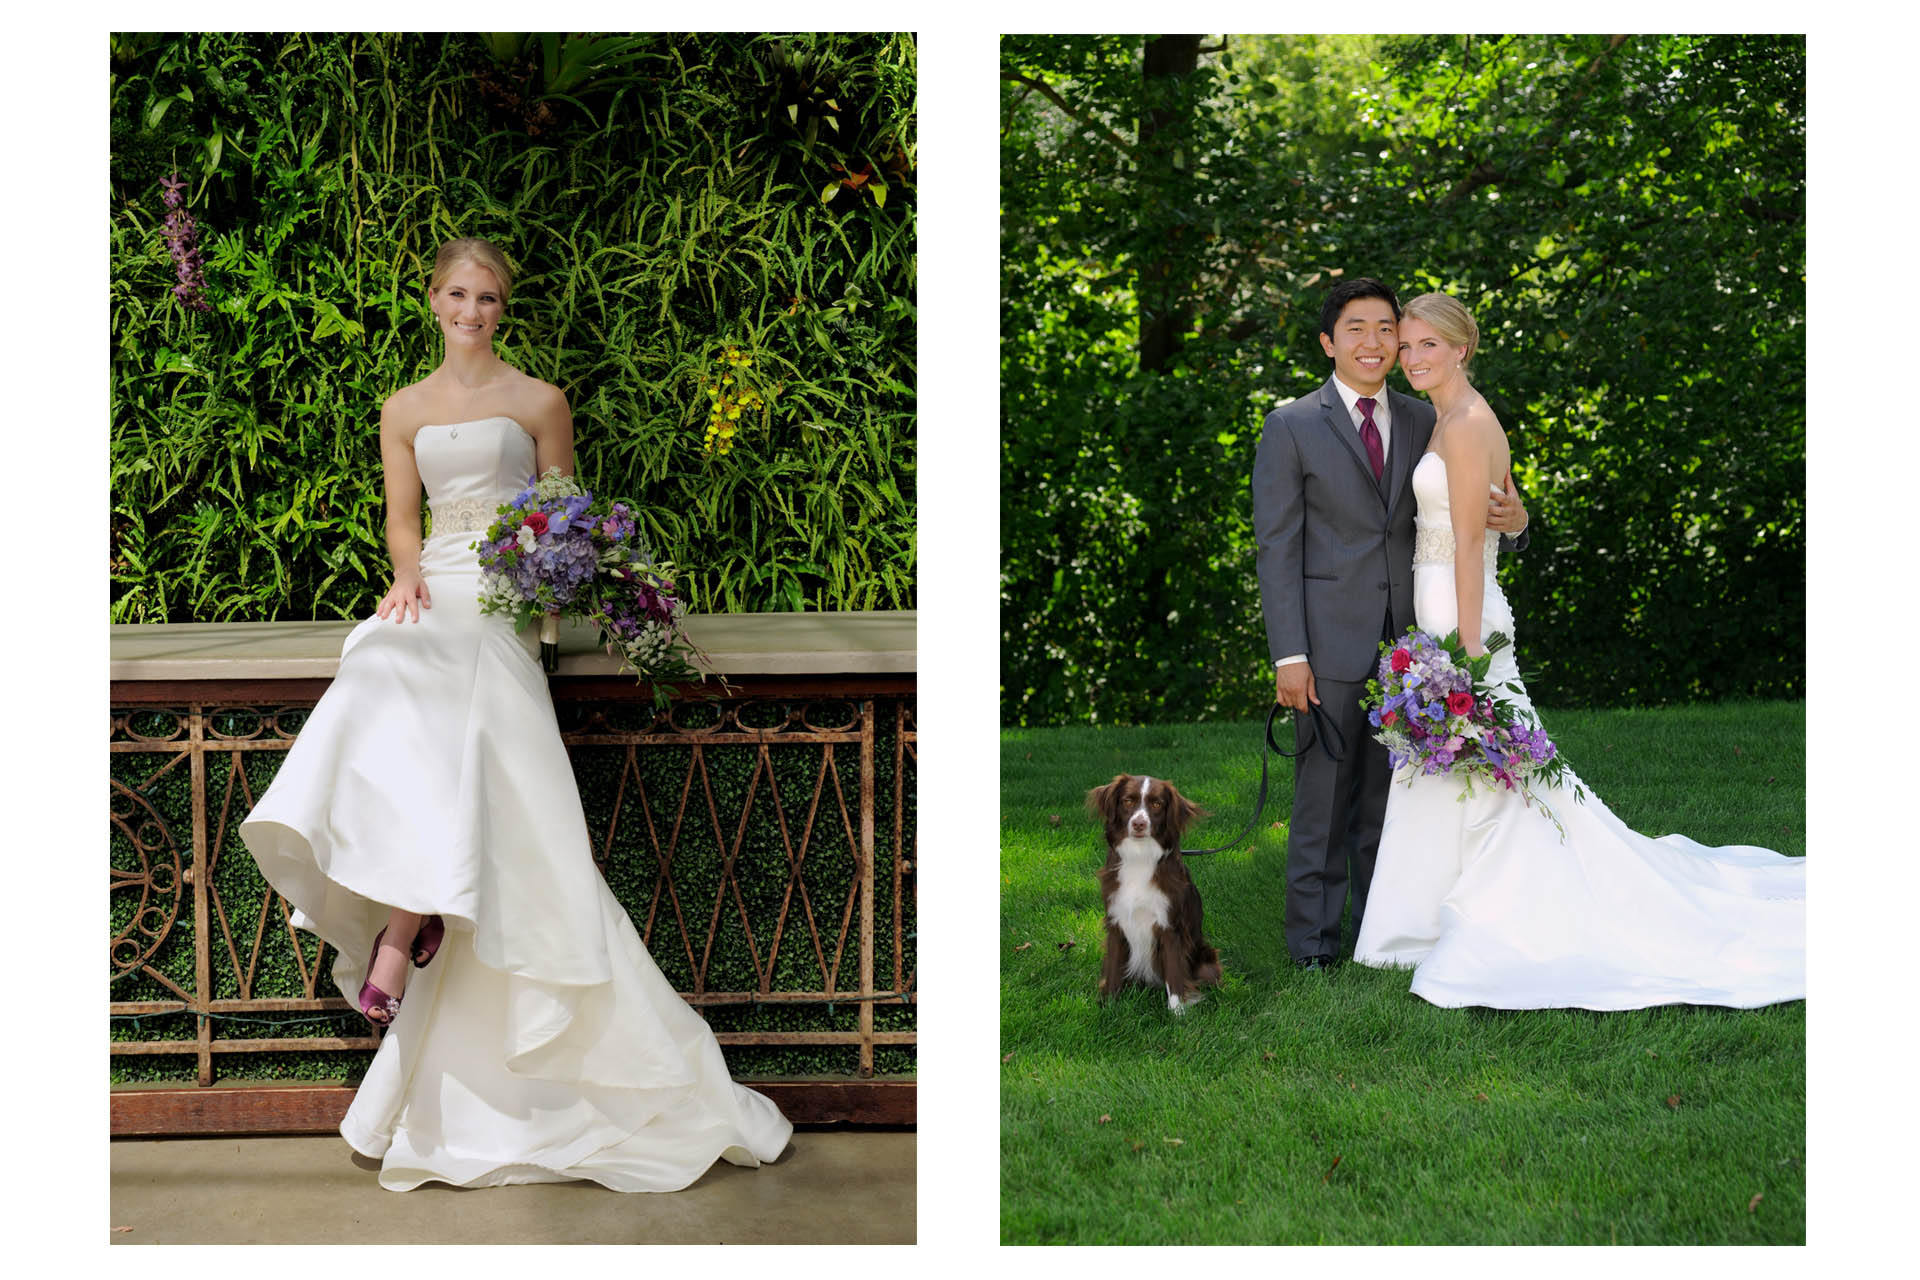 West Bloomfield, Michigan wedding photographer shows the bride on the bar at the Planterra Conservatory in West Bloomfield, Michigan along with photos of the bride and groom with their dog.